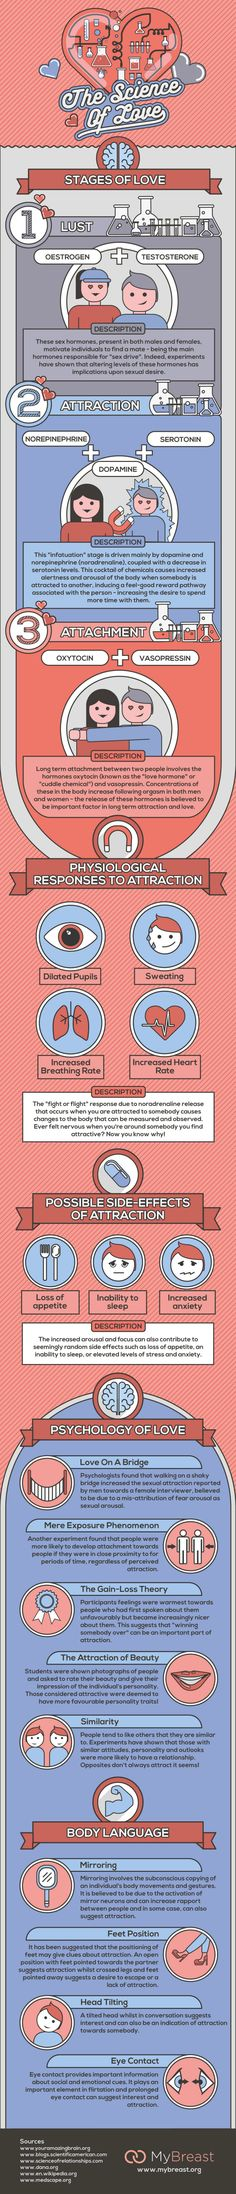 infographic describing the science behind falling in love